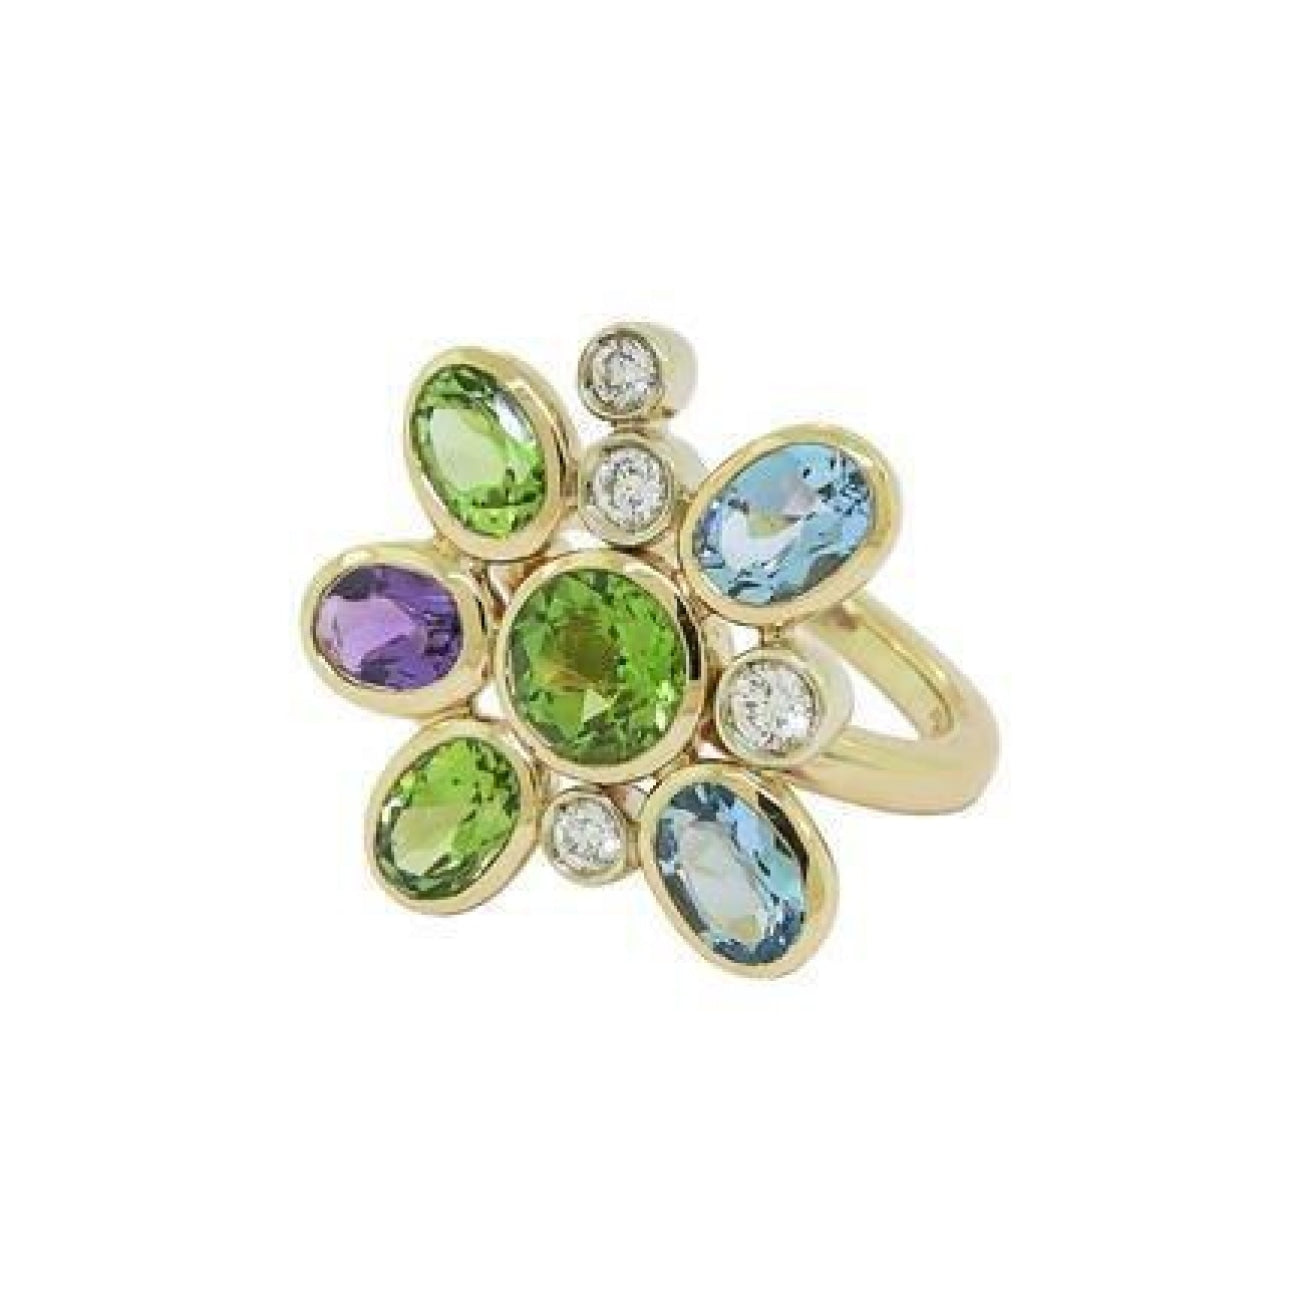 Manfredi Jewels Jewelry - Manfredi of Italy Flower Ring | Manfredi Jewels